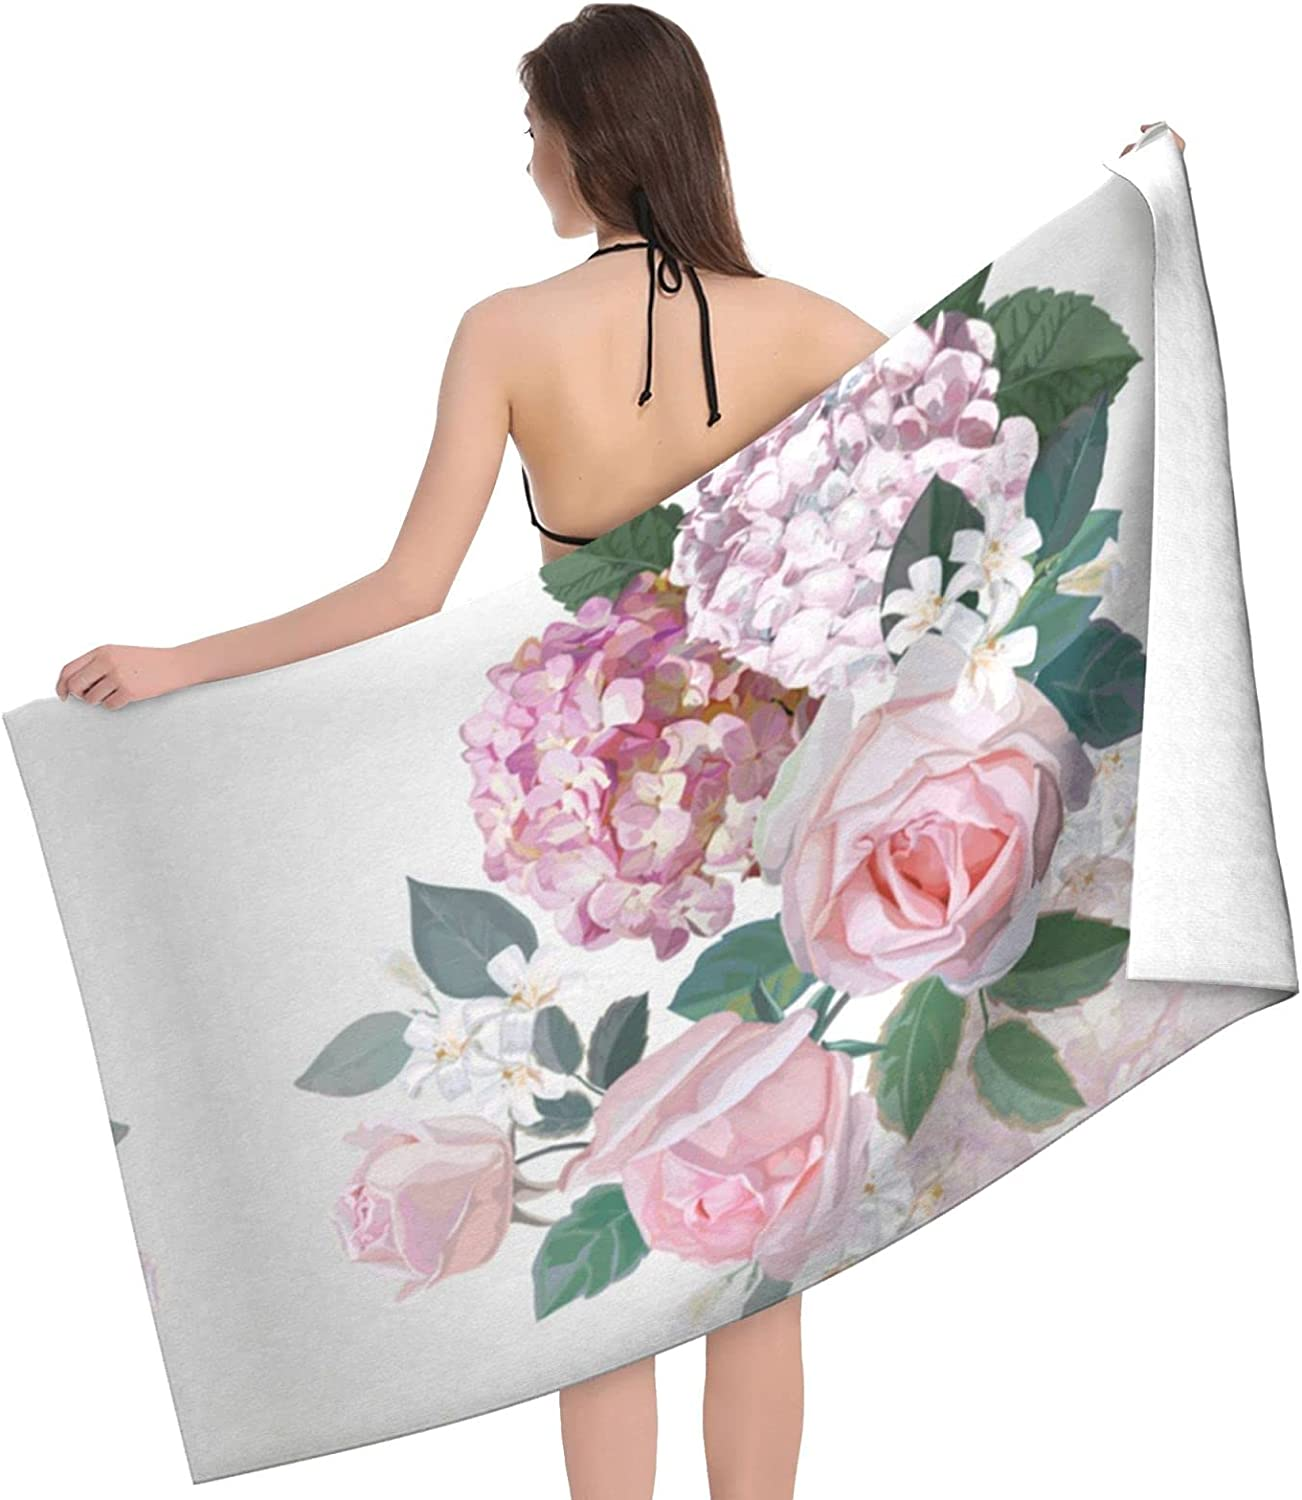 Pink Rose It is very popular Hydrangea Print Adult Beach - Max 64% OFF Doubl Towels Towel